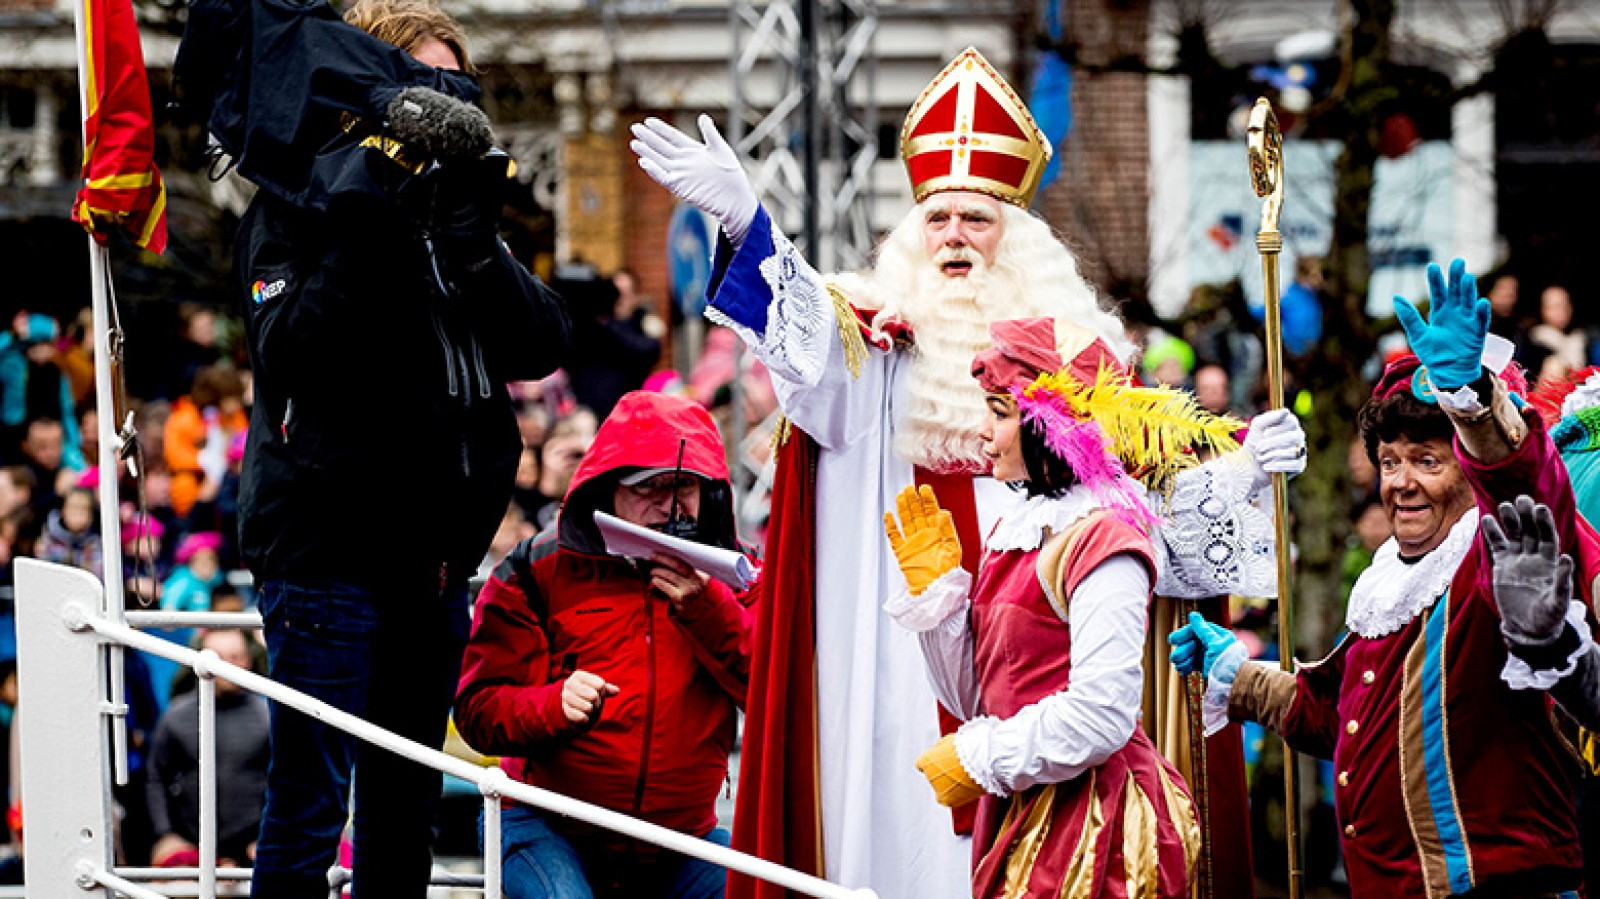 Chief Sinterklaas Officer